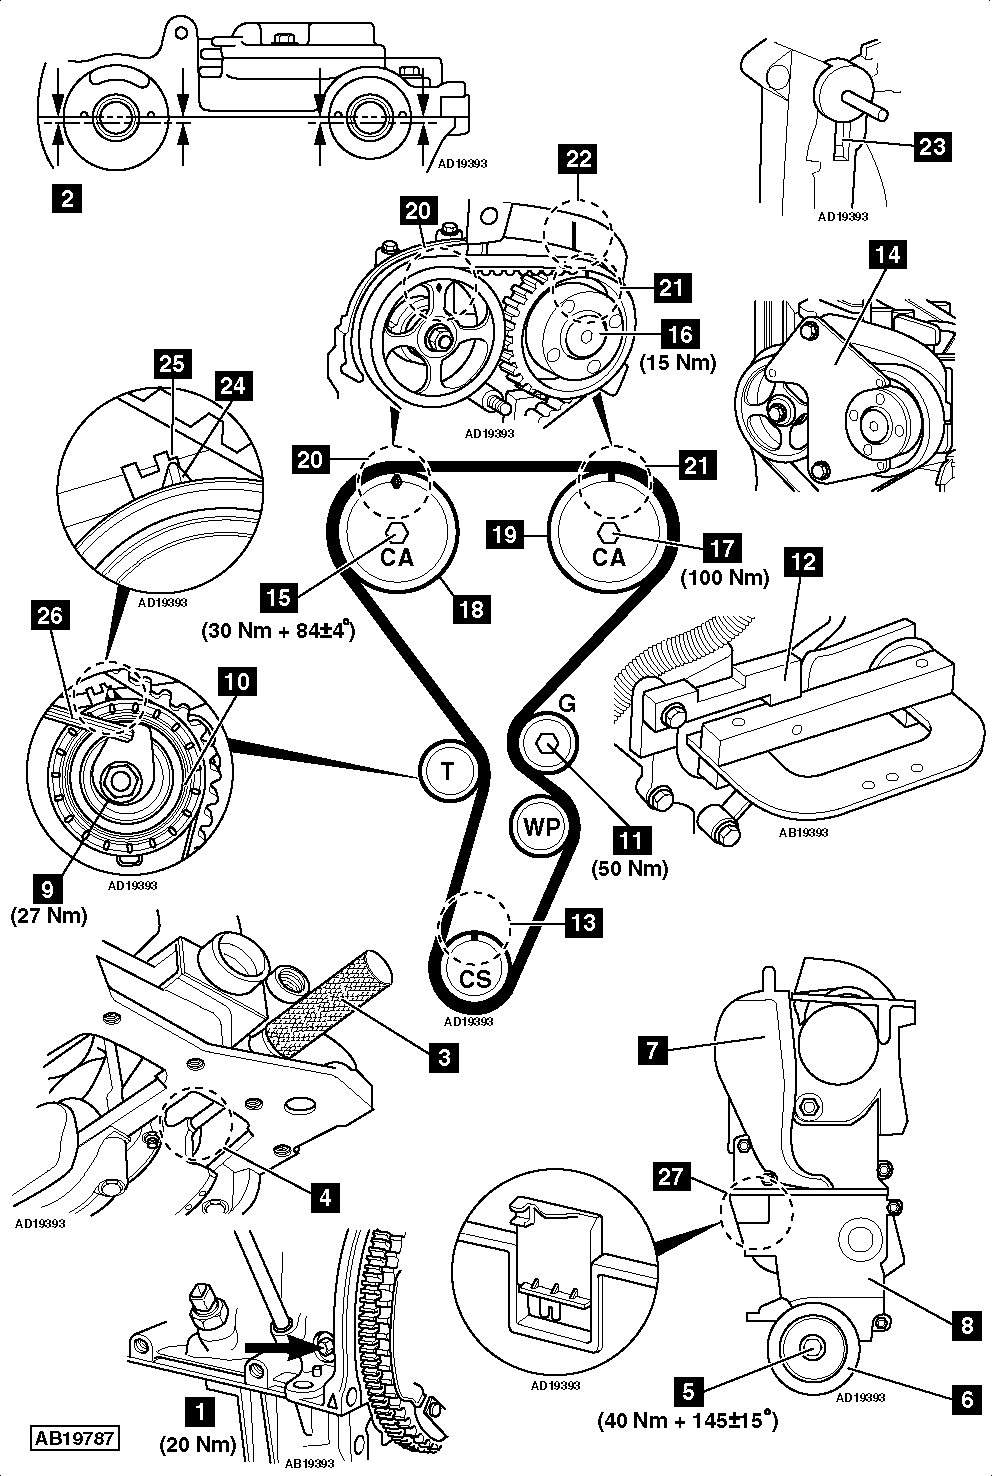 How To Replace Timing Belt On Renault Clio 3 1 6 94kw 2009 on av wiring diagram